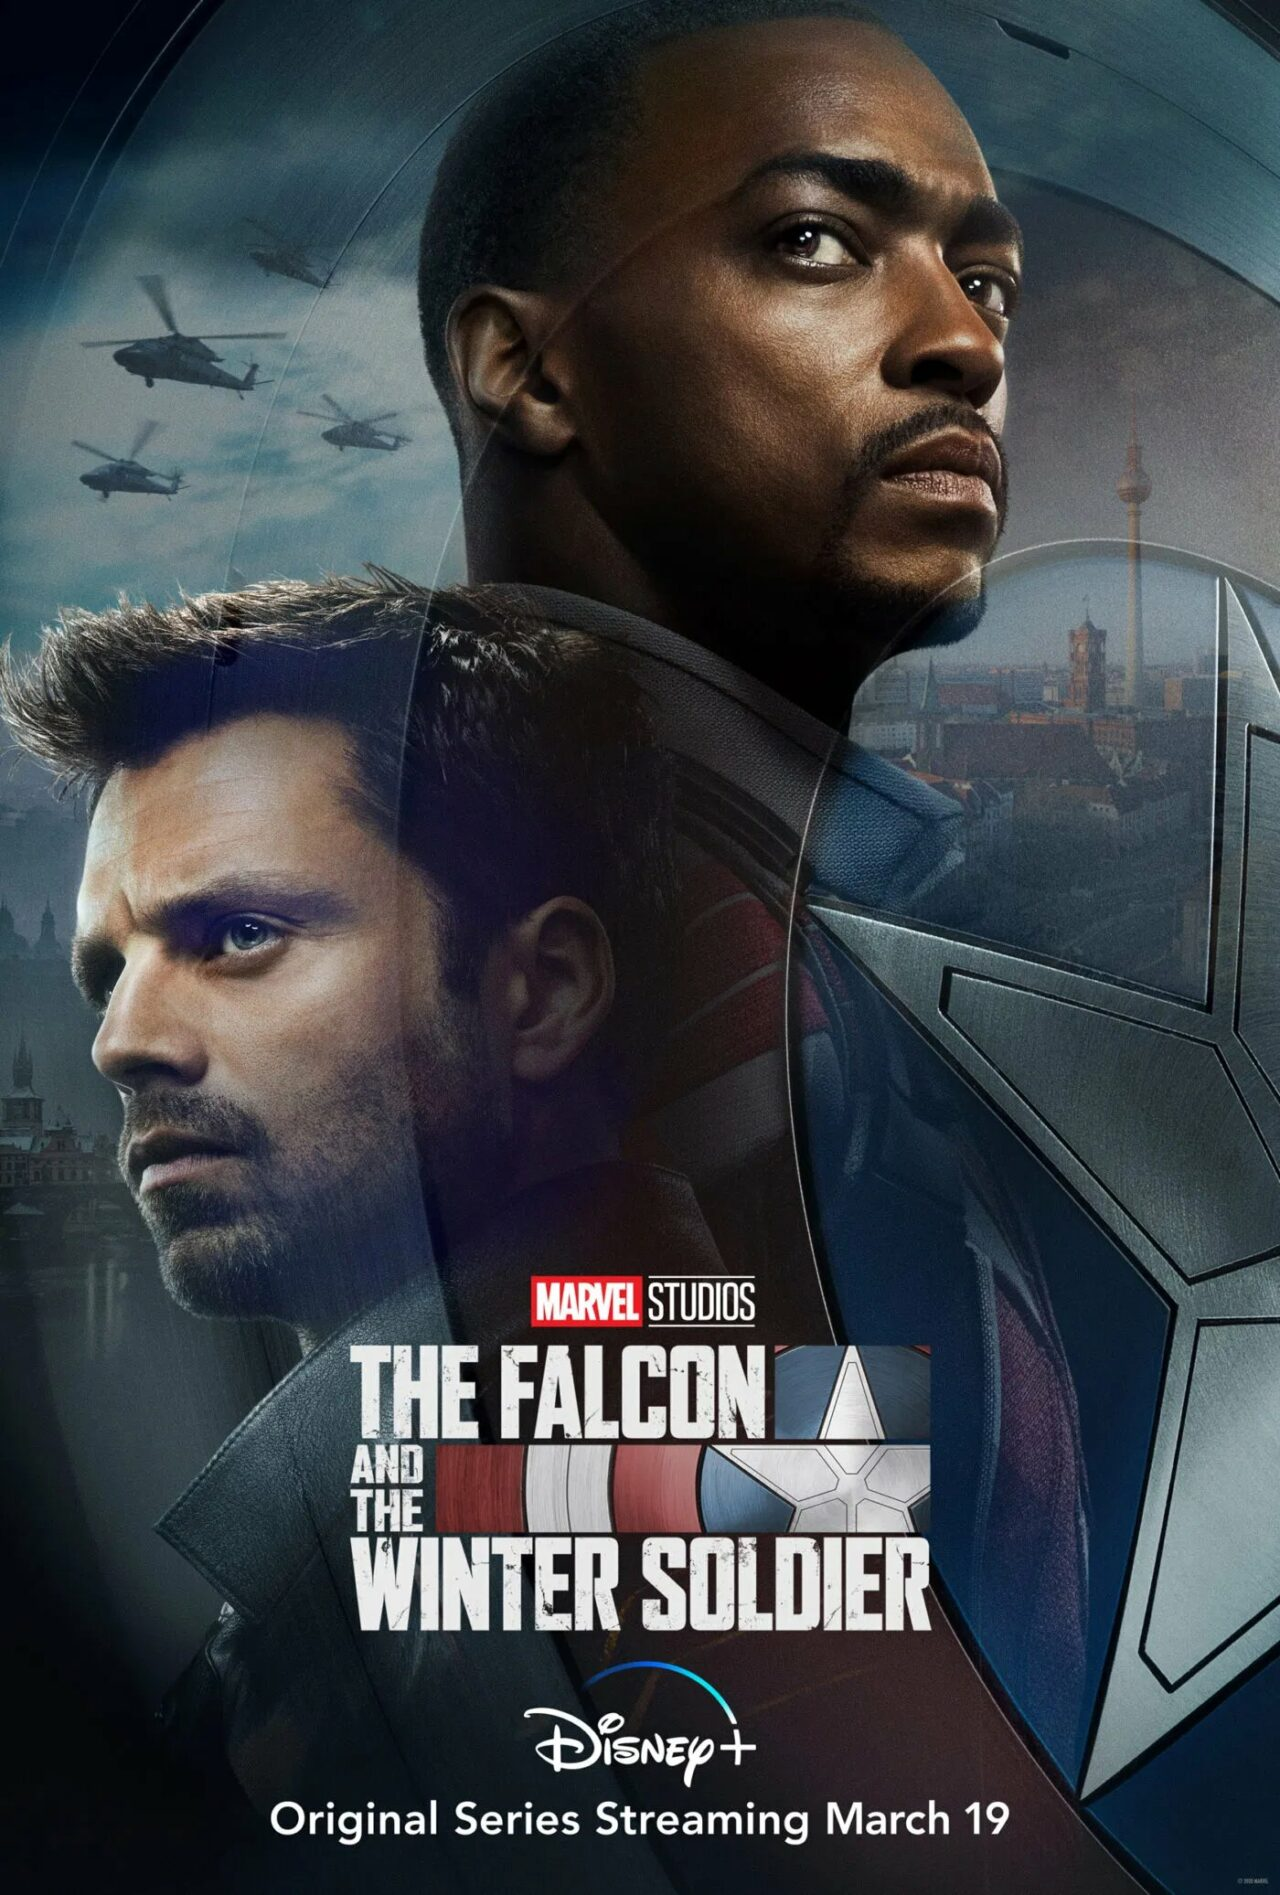 The Falcon and the Winter Soldier Teaser-Poster